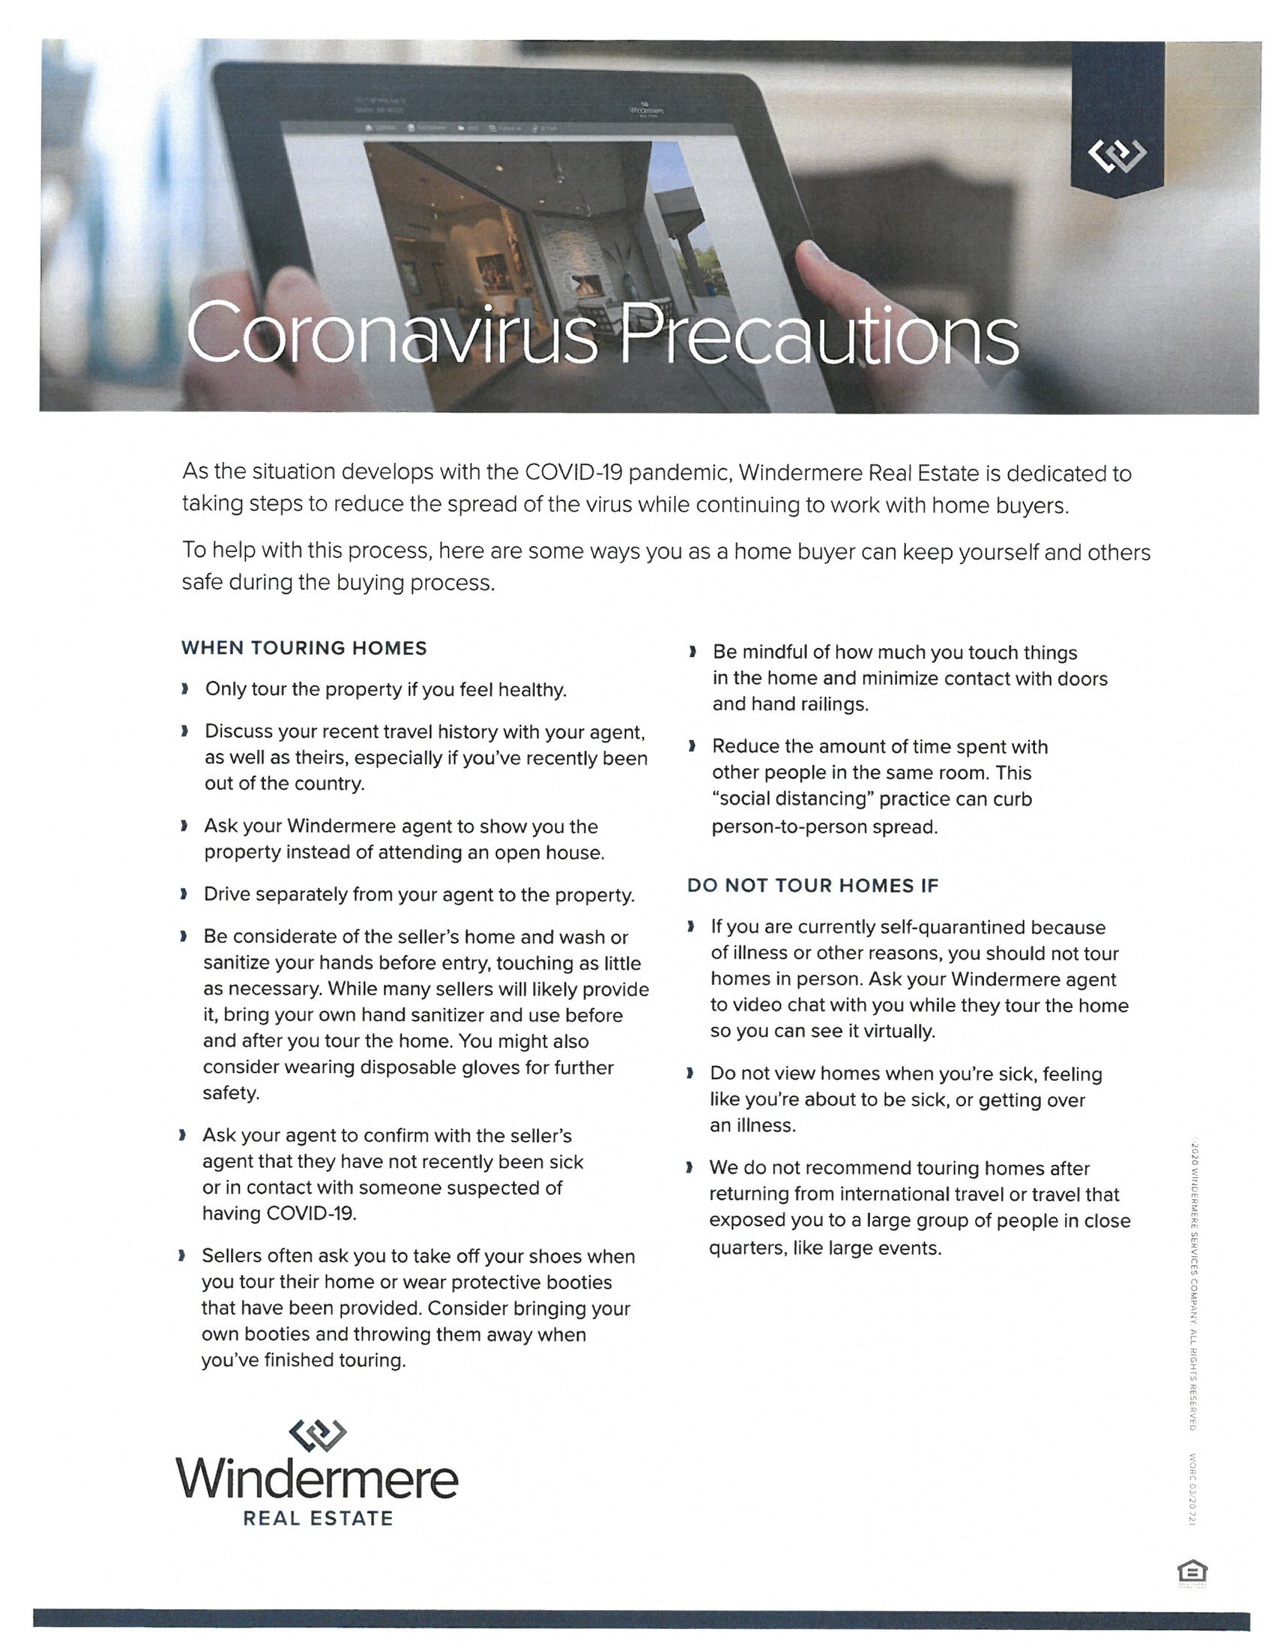 Coronavirus (COVID-19) and The Housing Market Saftey When Touring Homes